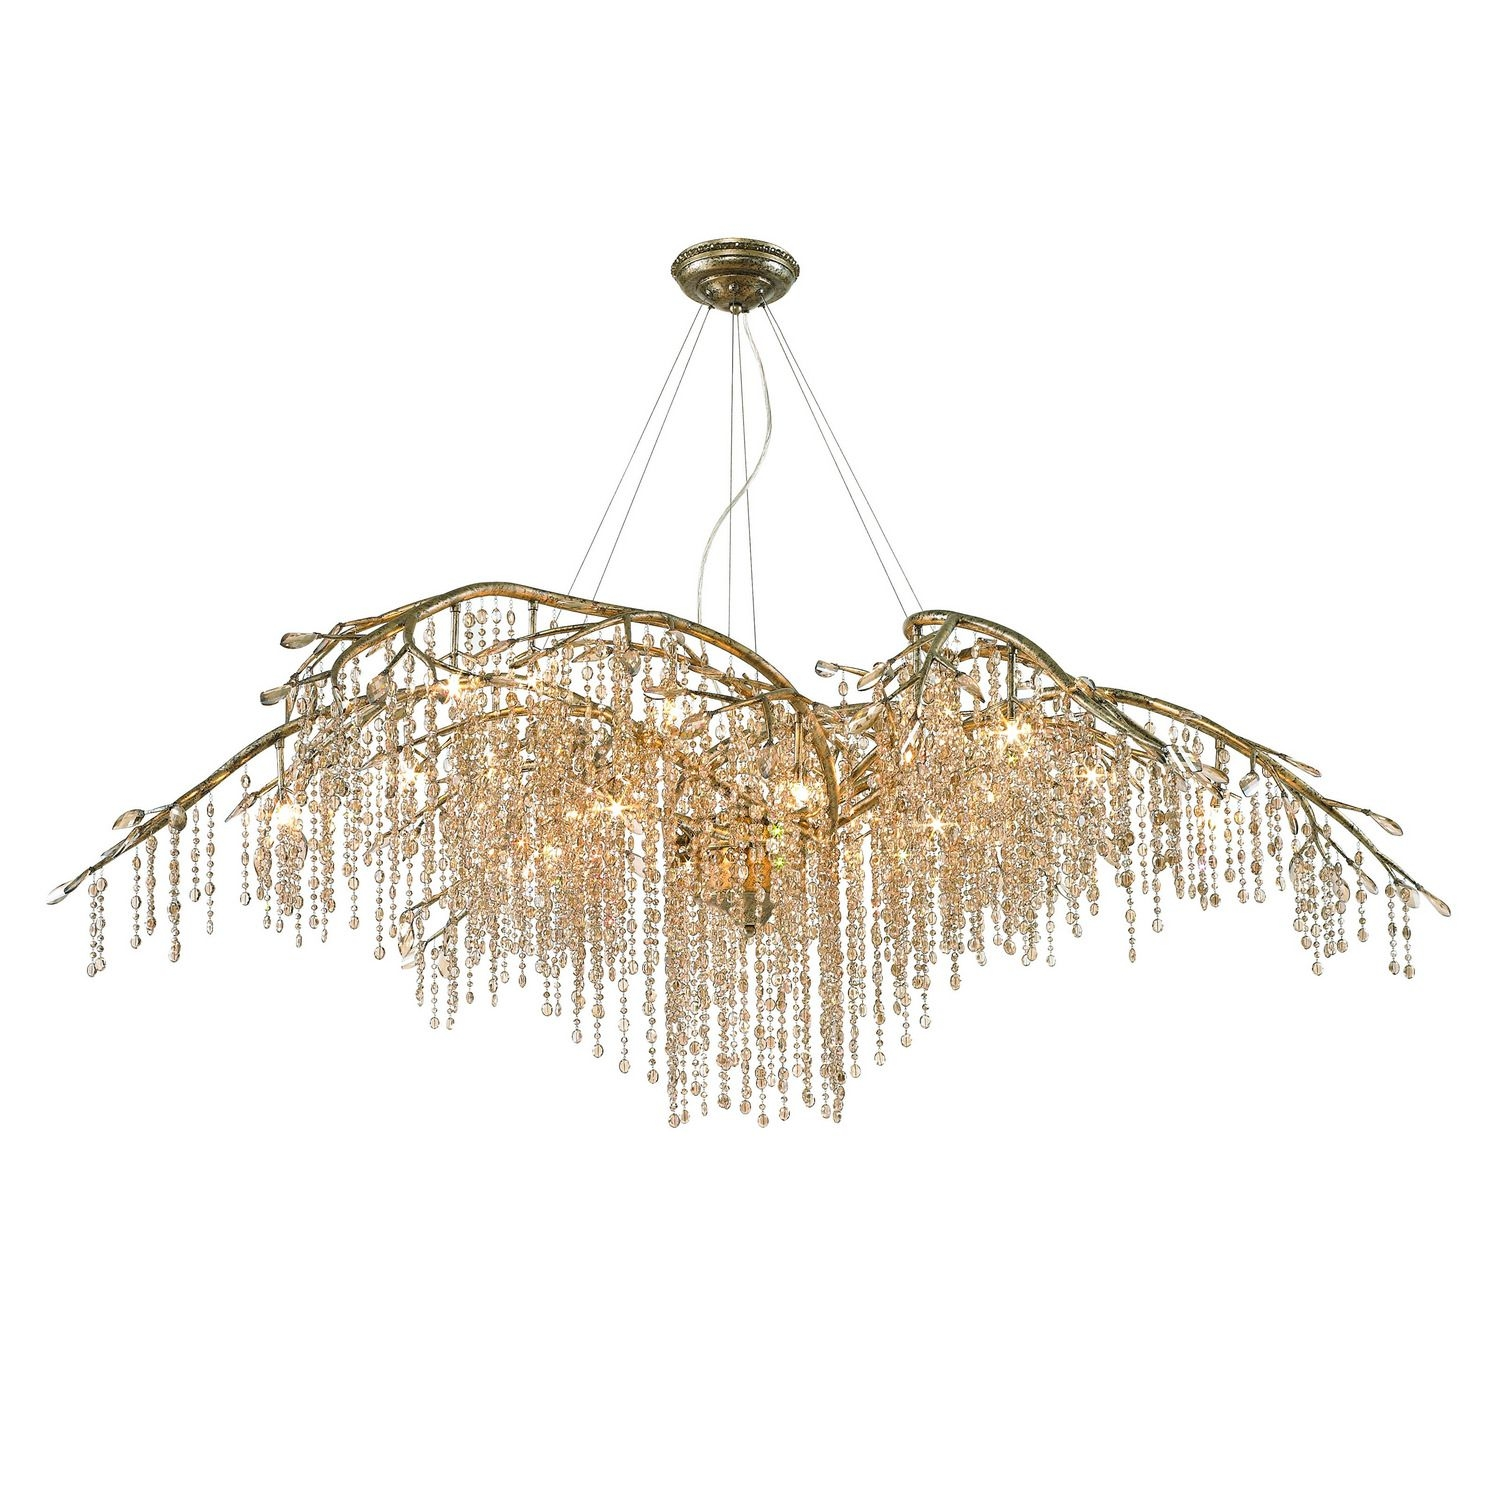 Qz990 Golden Lighting Autumn Twilight Goldsilver Clear Crystal Within Crystal Branch Chandelier (Photo 5 of 15)